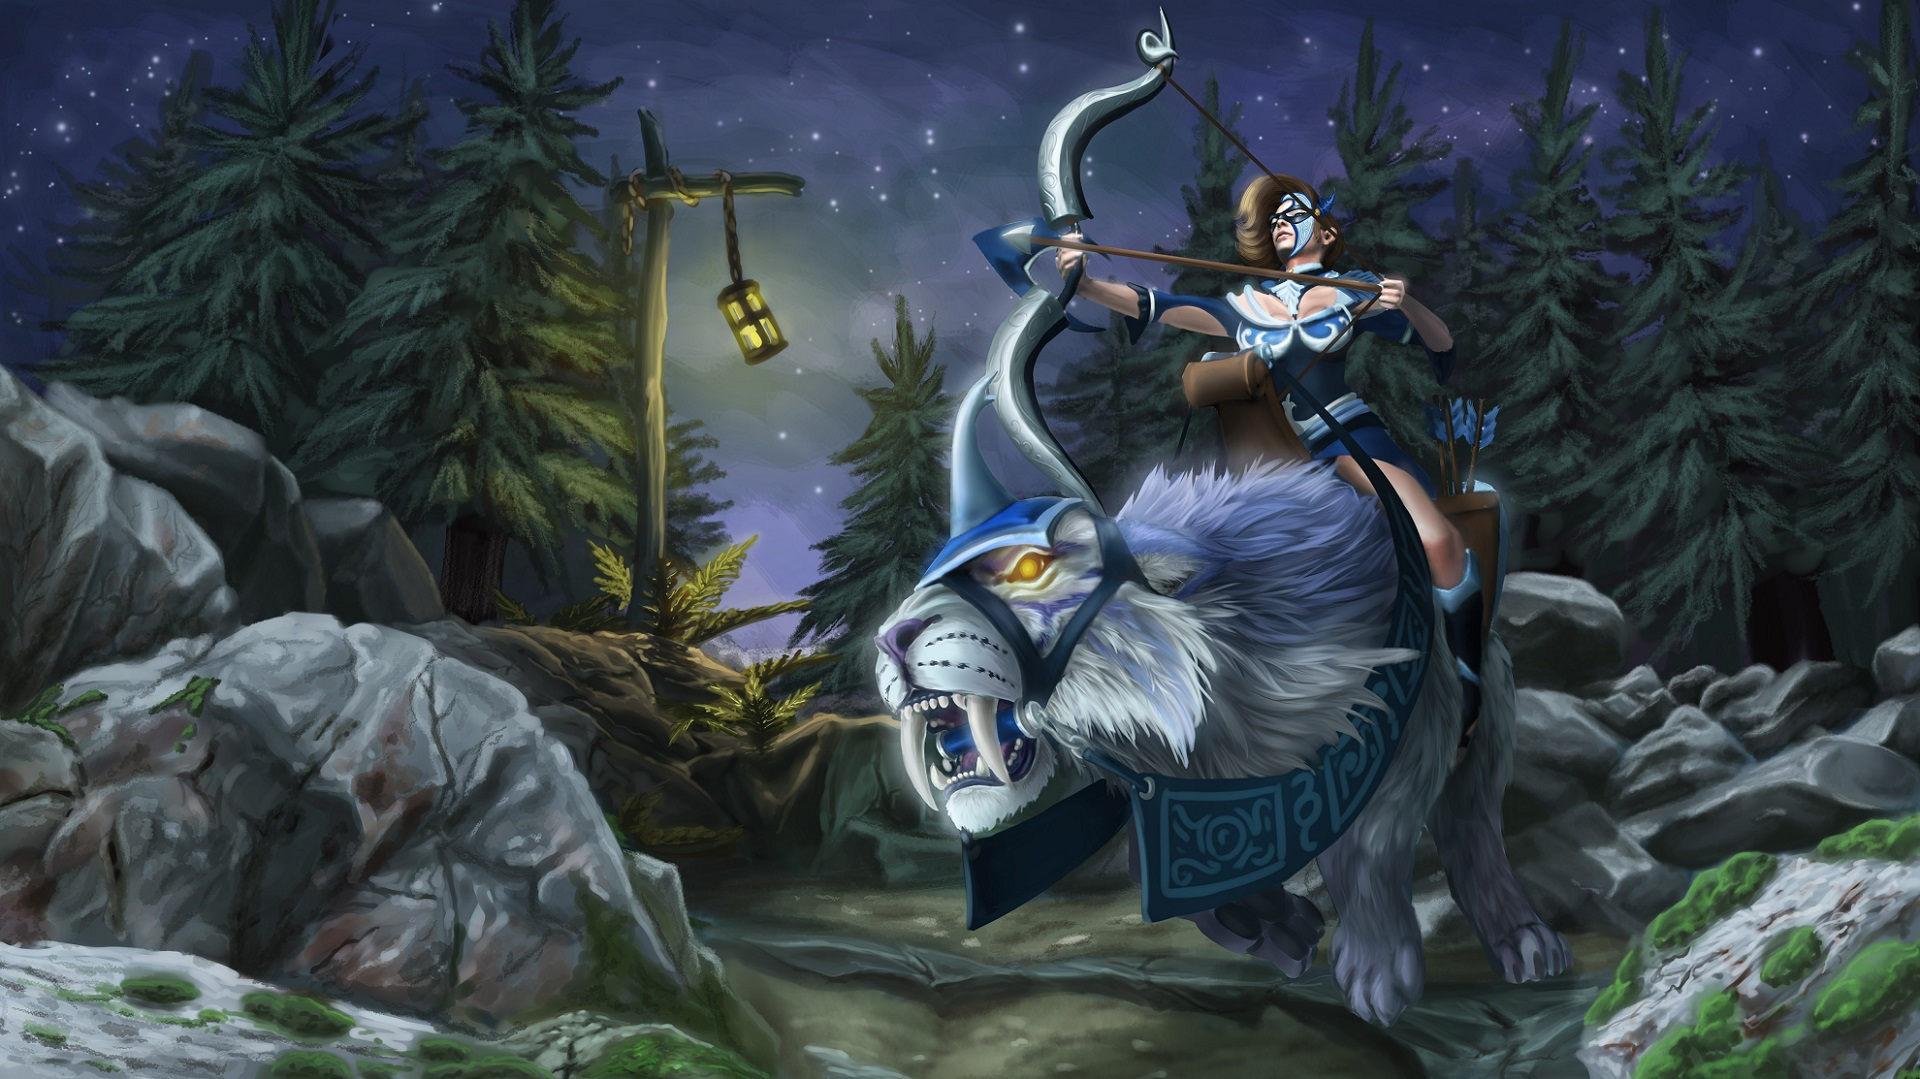 Mirana images for pc wallpaper